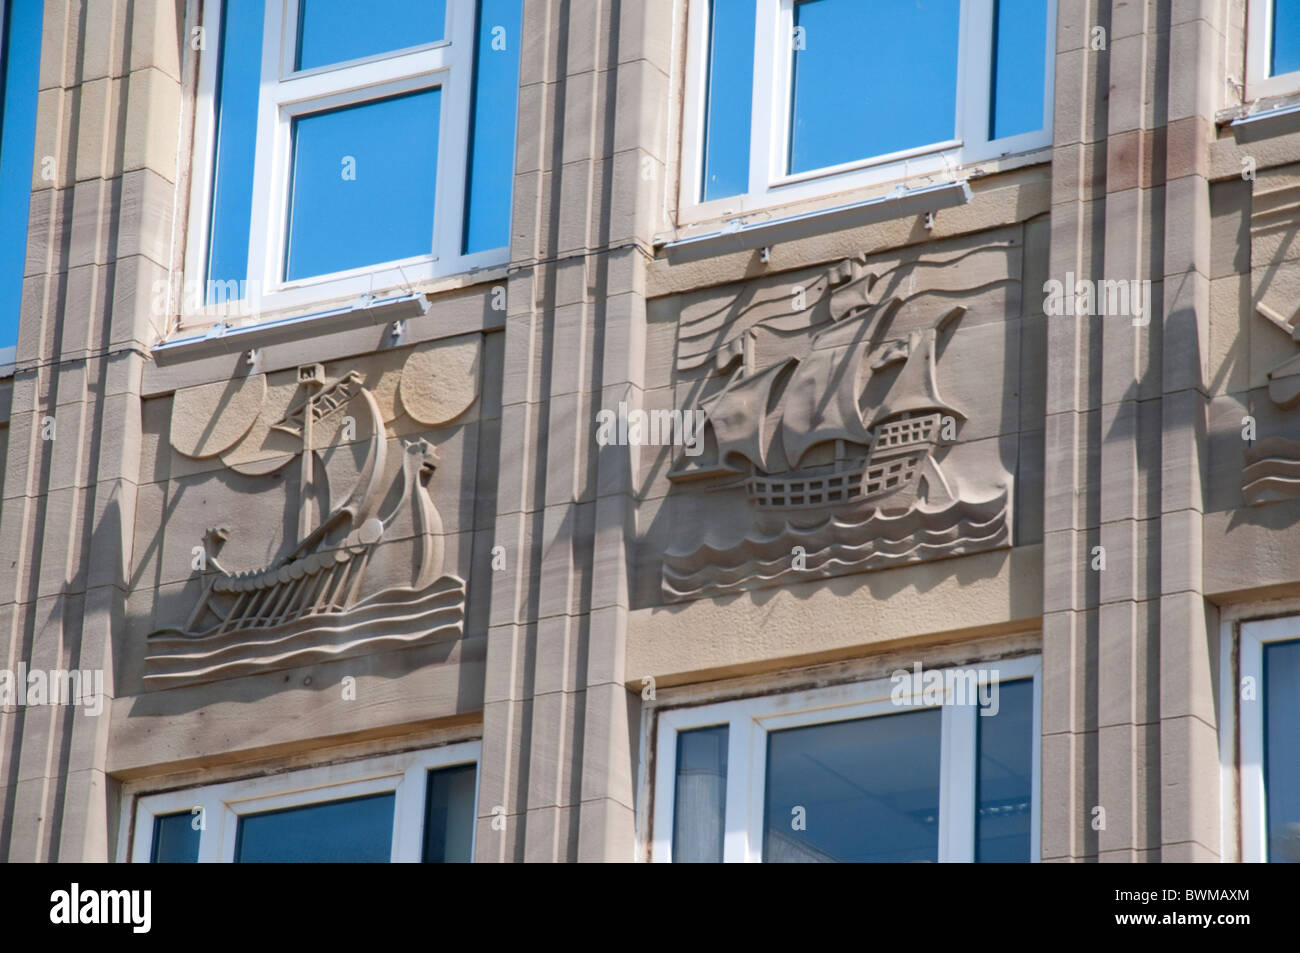 Art Dec Building in Blackpool on the coast of Lancashire in Northern England - Stock Image